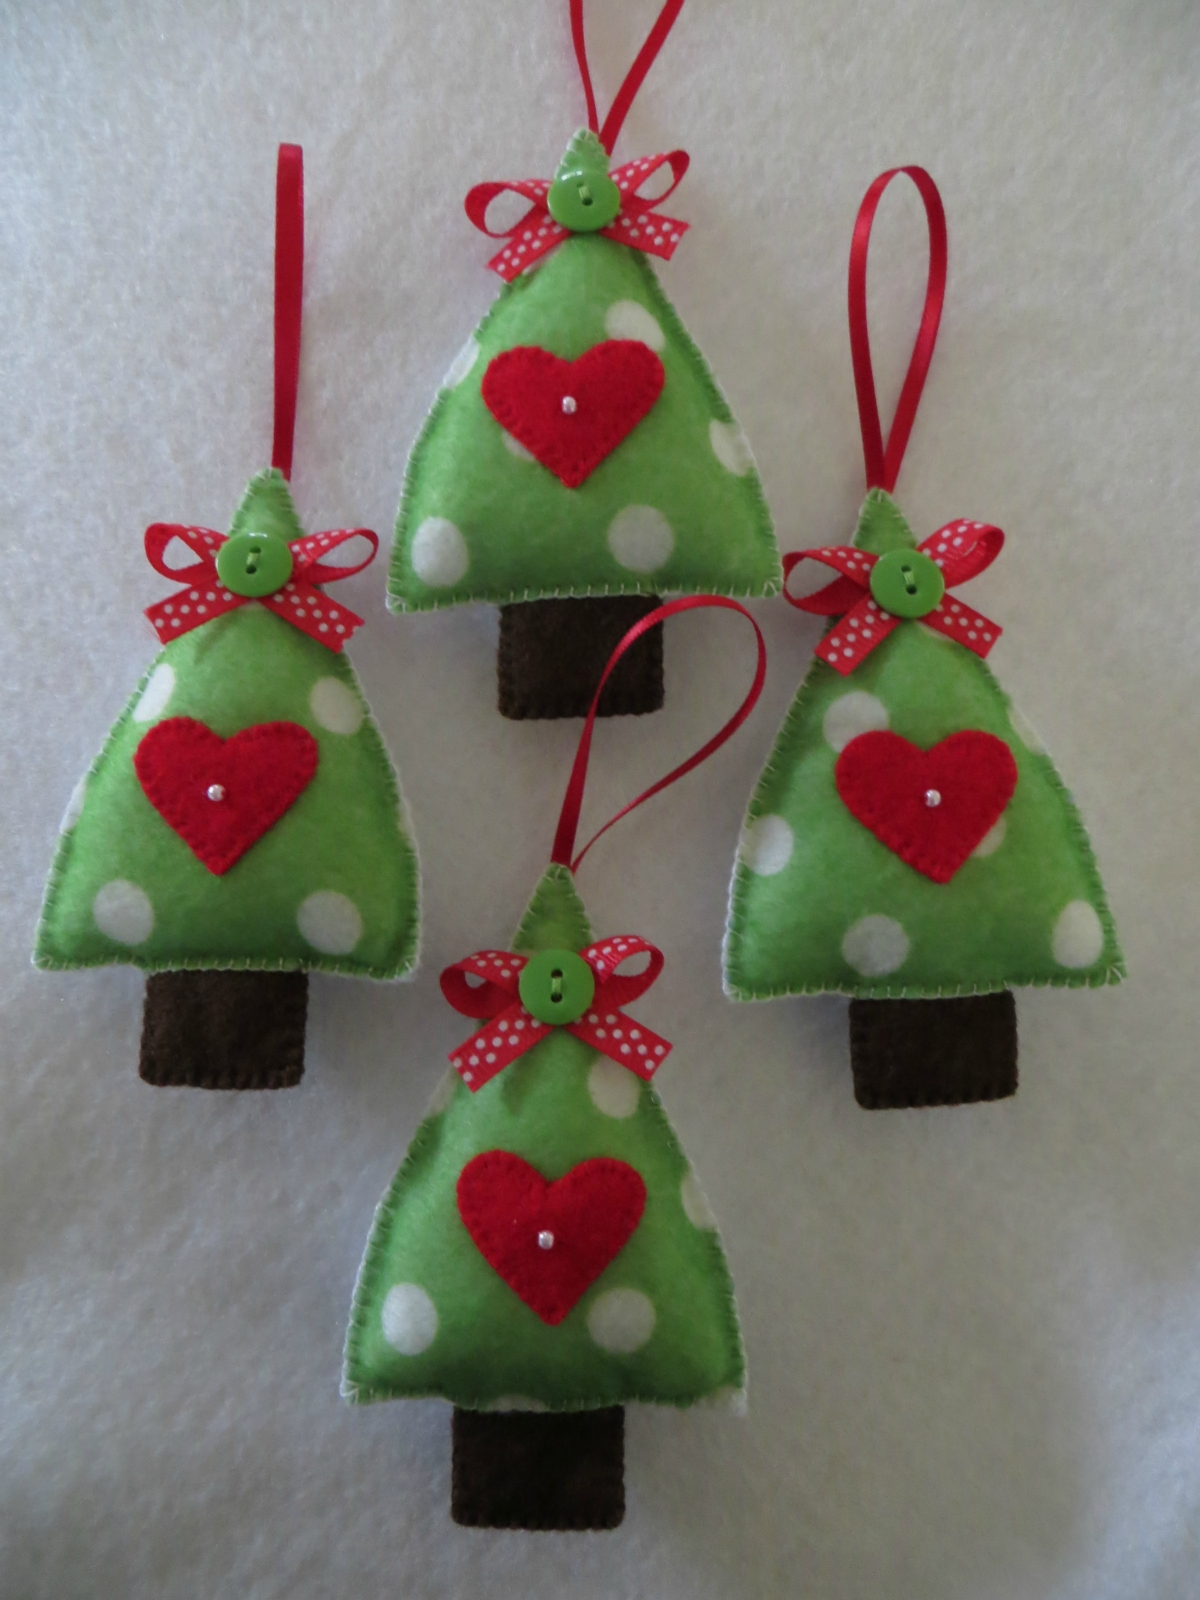 Christmas felt ornaments - Hand Stitched Felt Christmas Tree Ornament Felt